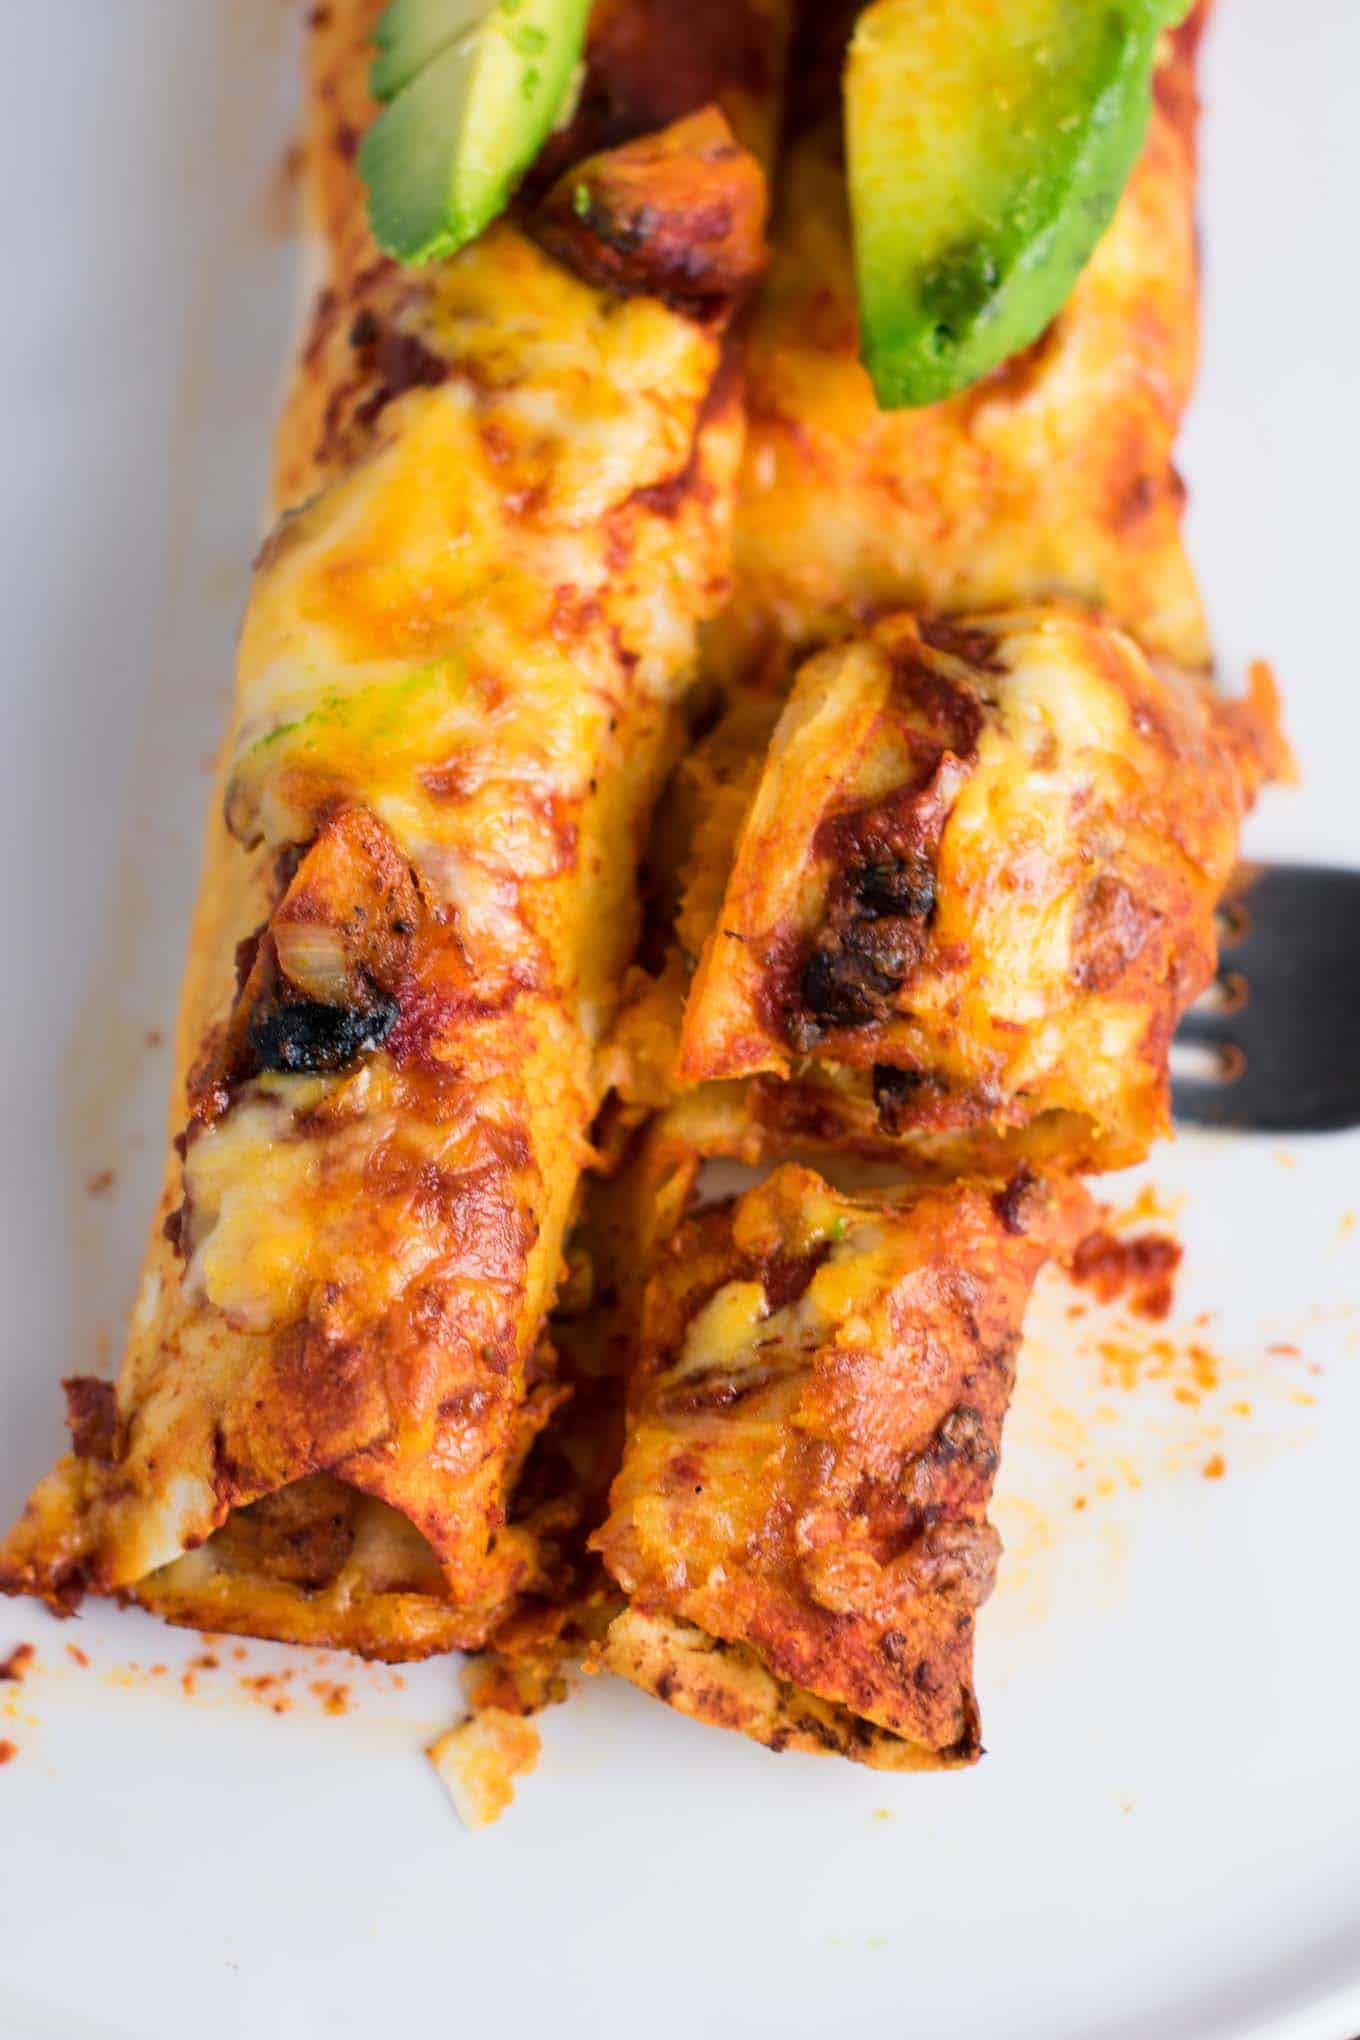 Smoky Sweet potato black bean enchiladas recipe. Even meat eaters will flip for these delicious enchiladas covered in sauce and freshly grated Colby jack. #meatless #dinner #vegetarian #enchiladas